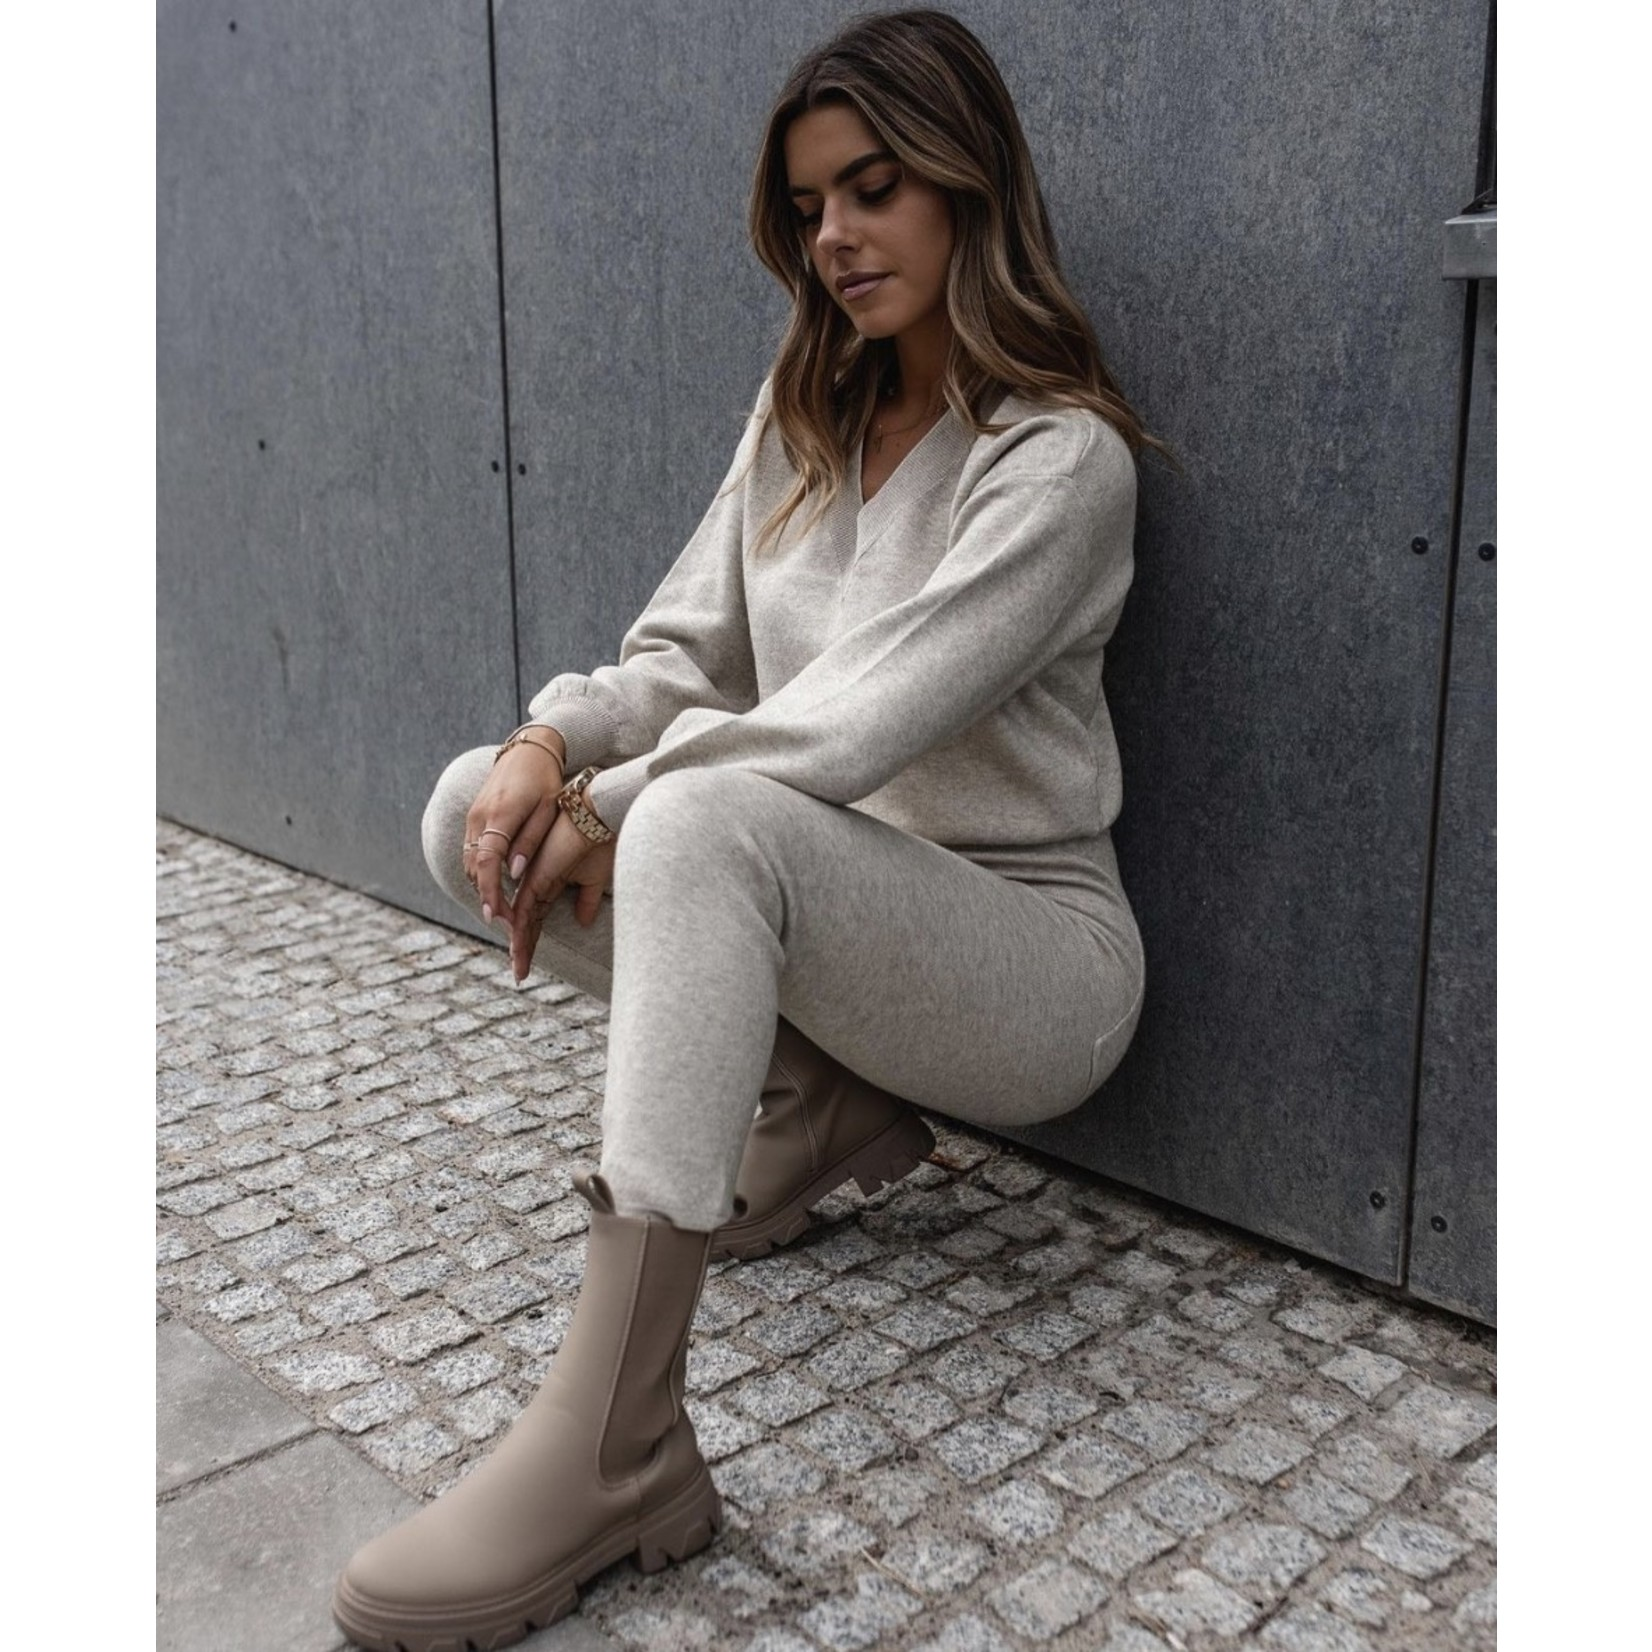 Excuiss Ensemble – Training – Taupe